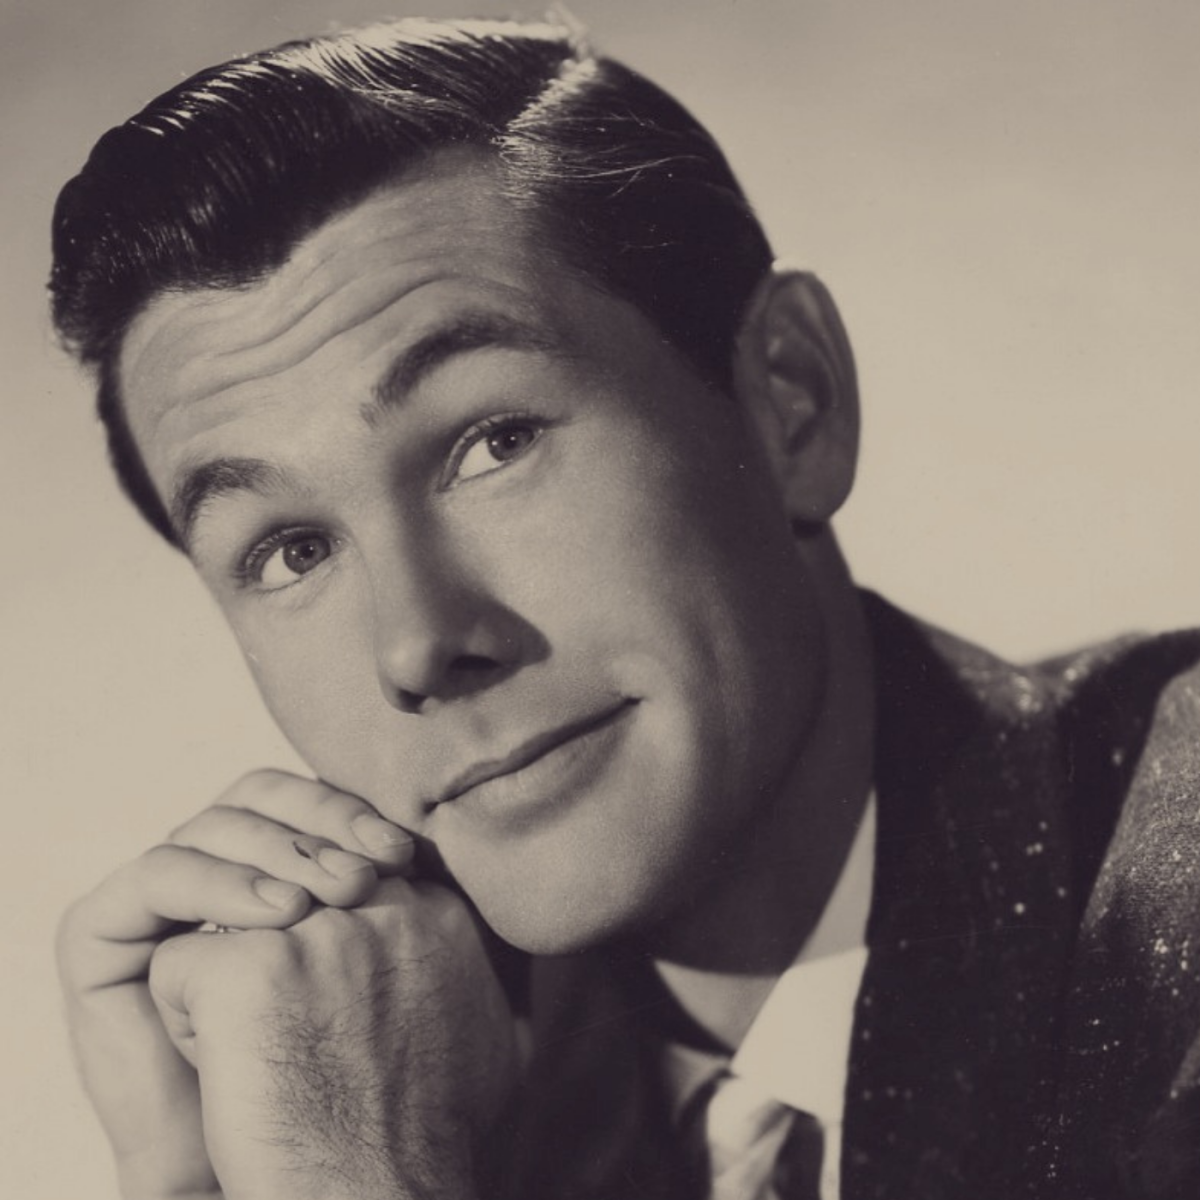 Johnny Carson, and American television comedian, lived from October 23rd, 1925, to January 23rd, 2005.